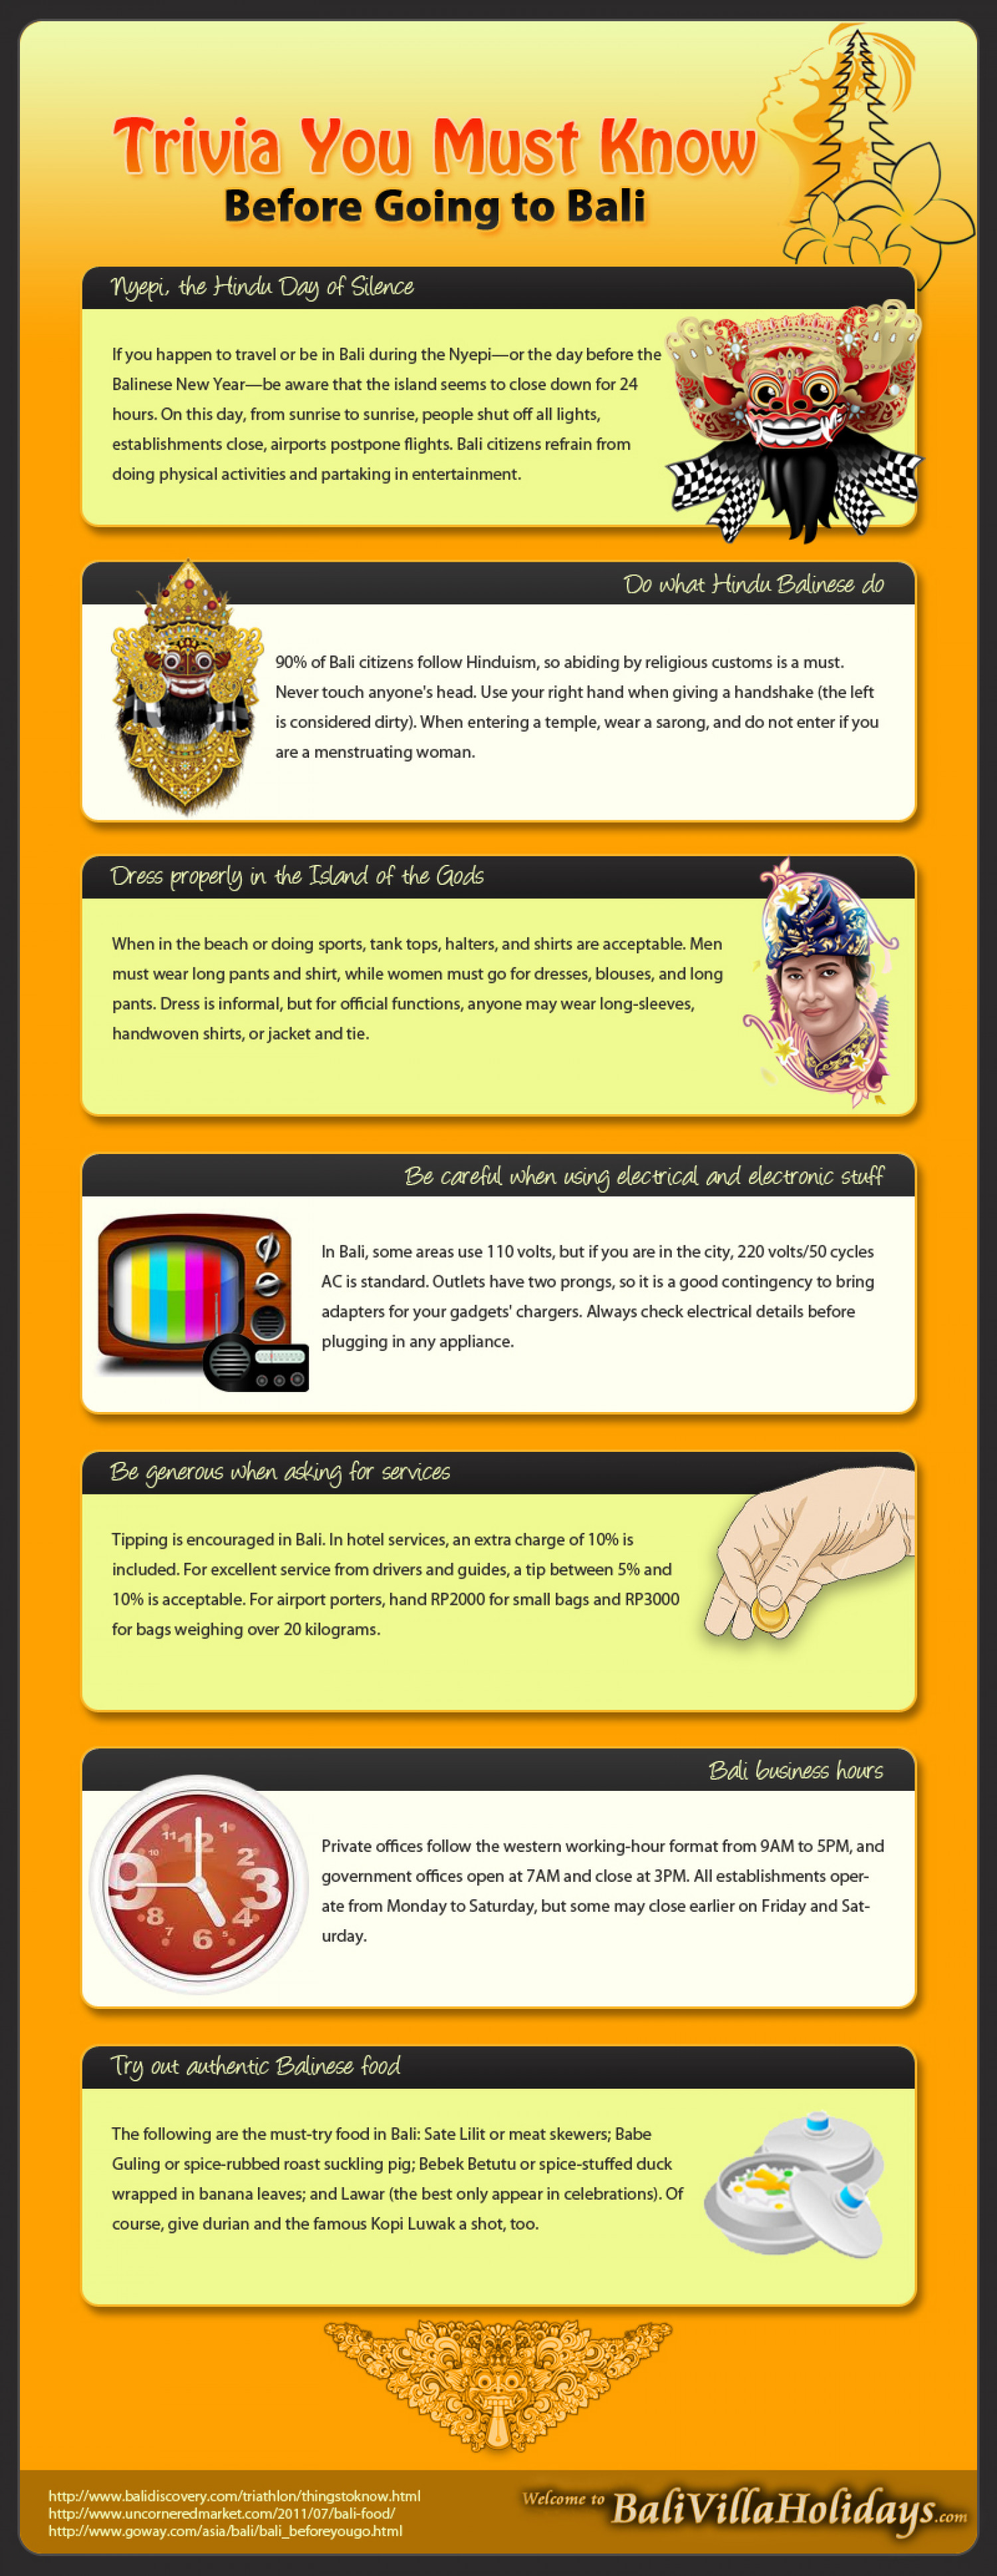 Things You Must Know Before Going to Bali Infographic